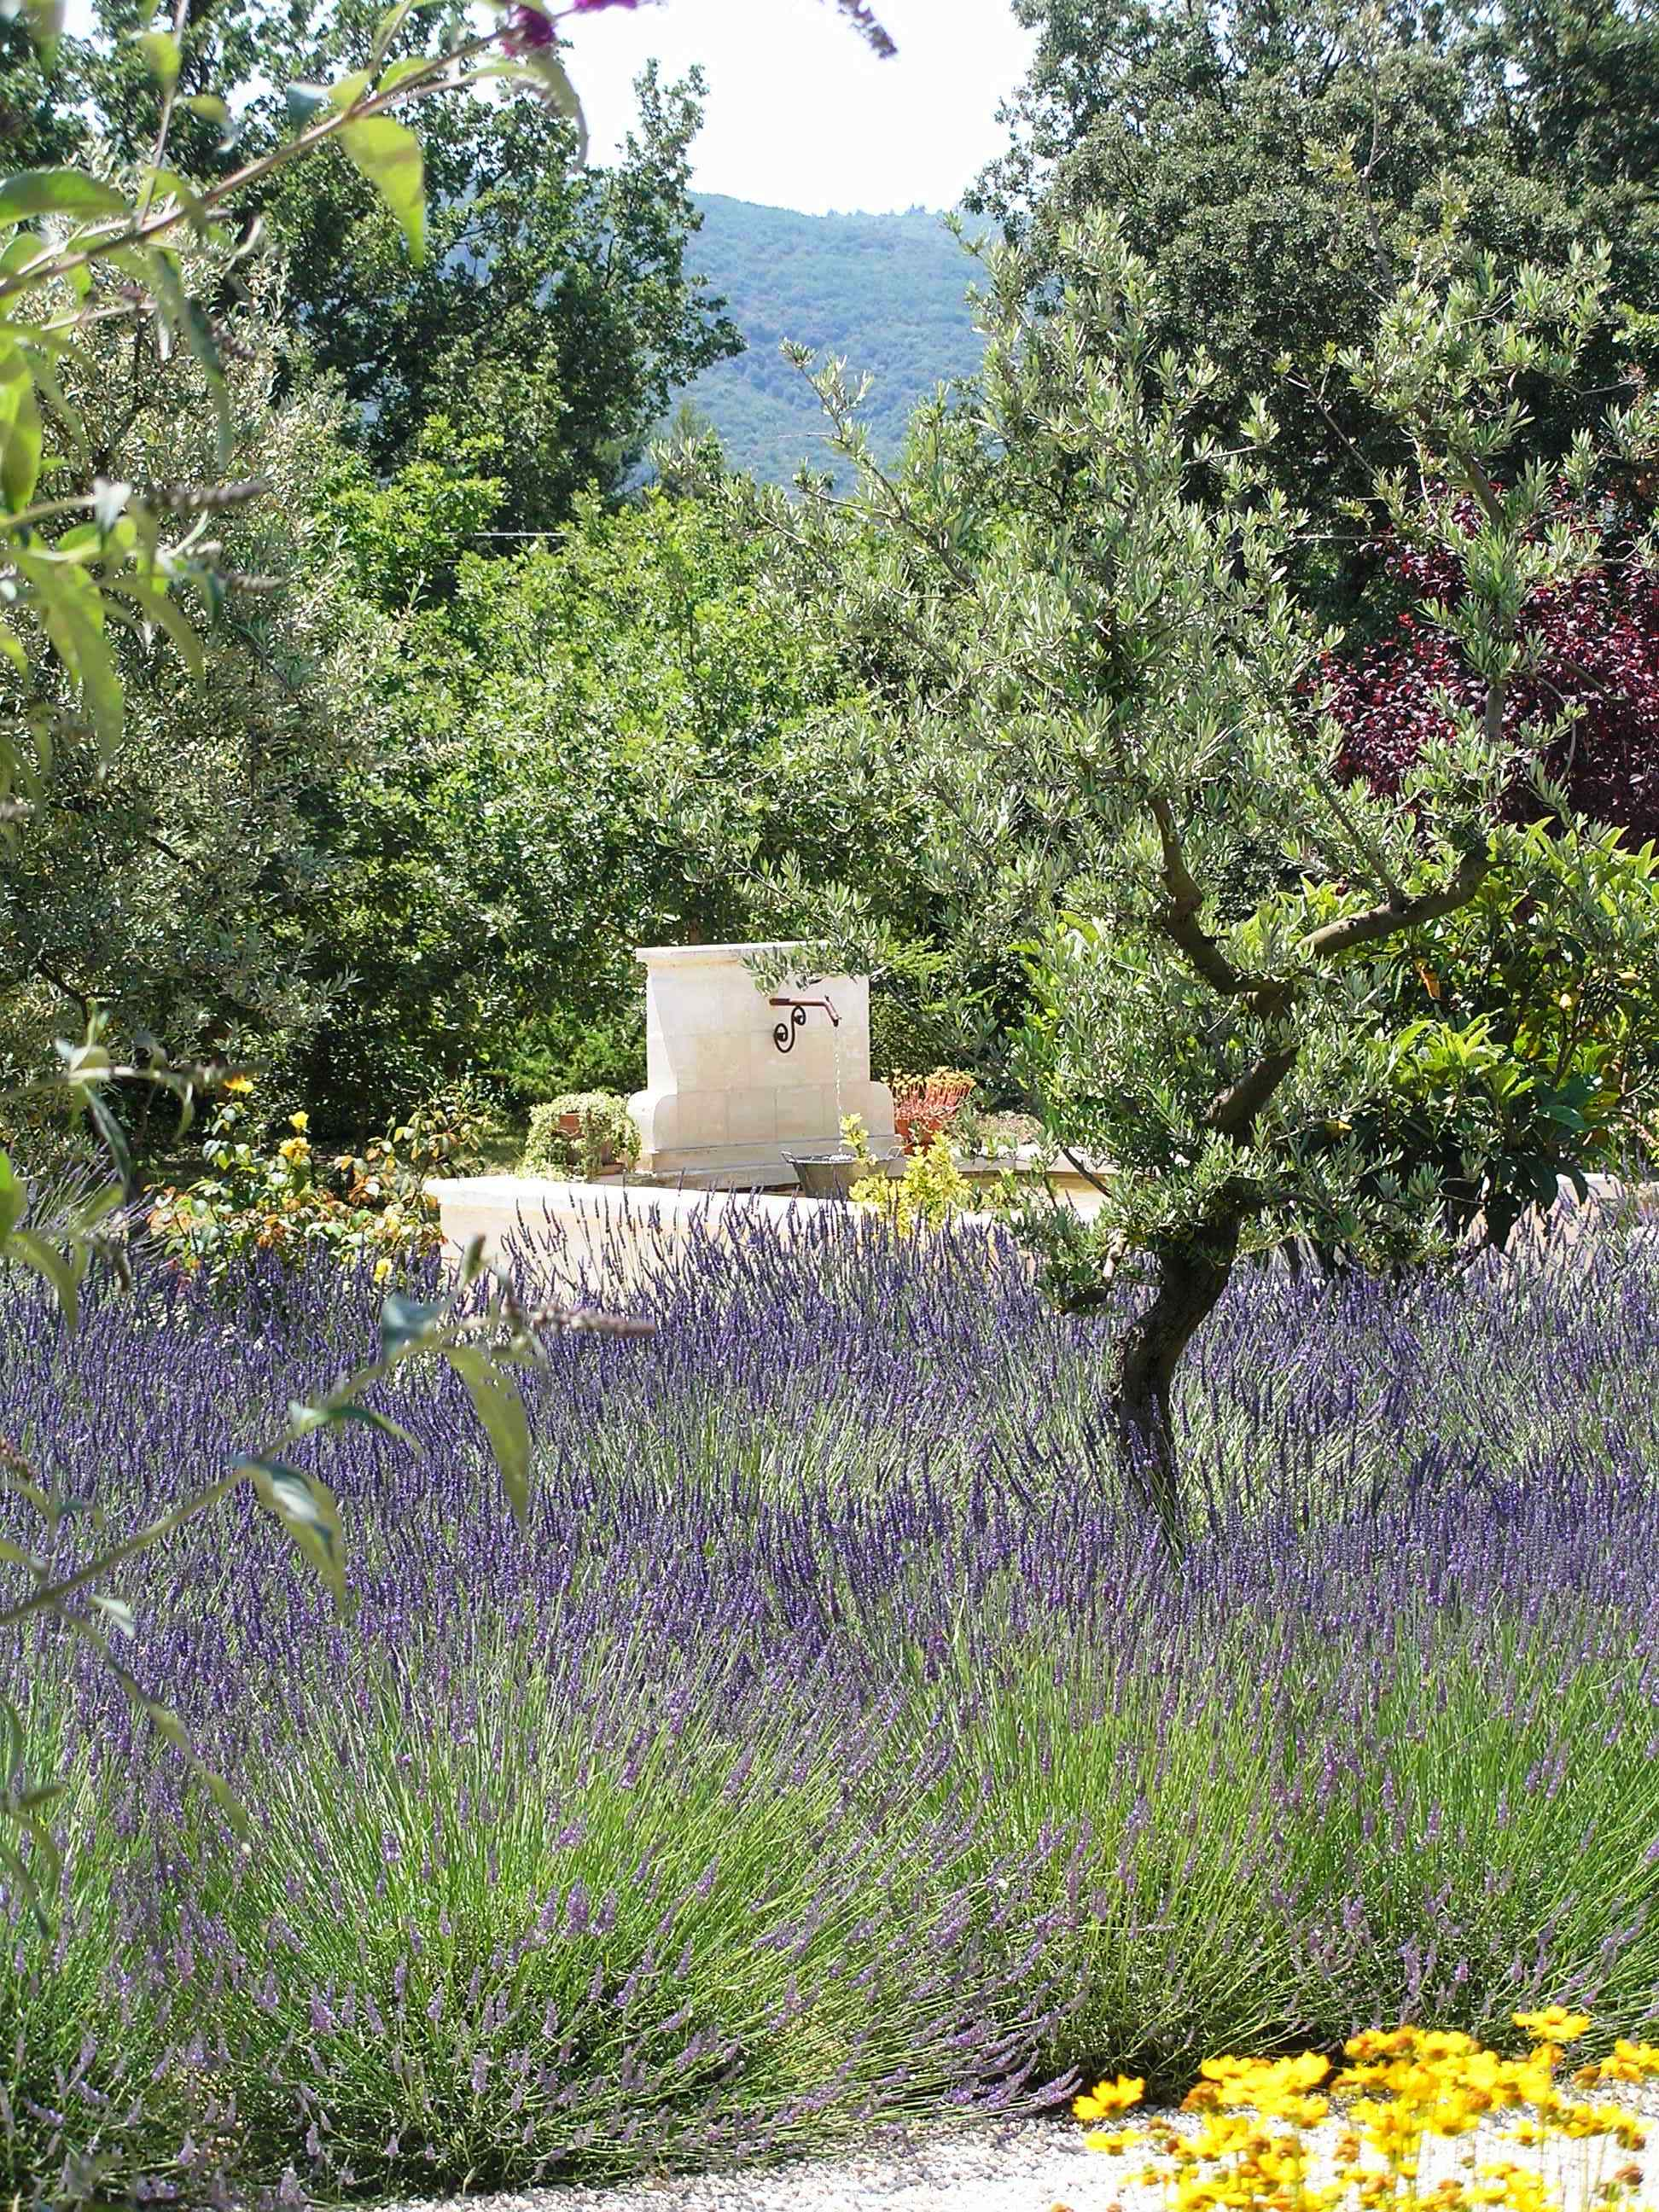 Its abundant vegetation provides a beneficial freshness during the summer, to enjoy the pleasures of nature and leave you intoxicated by the scent of lavender